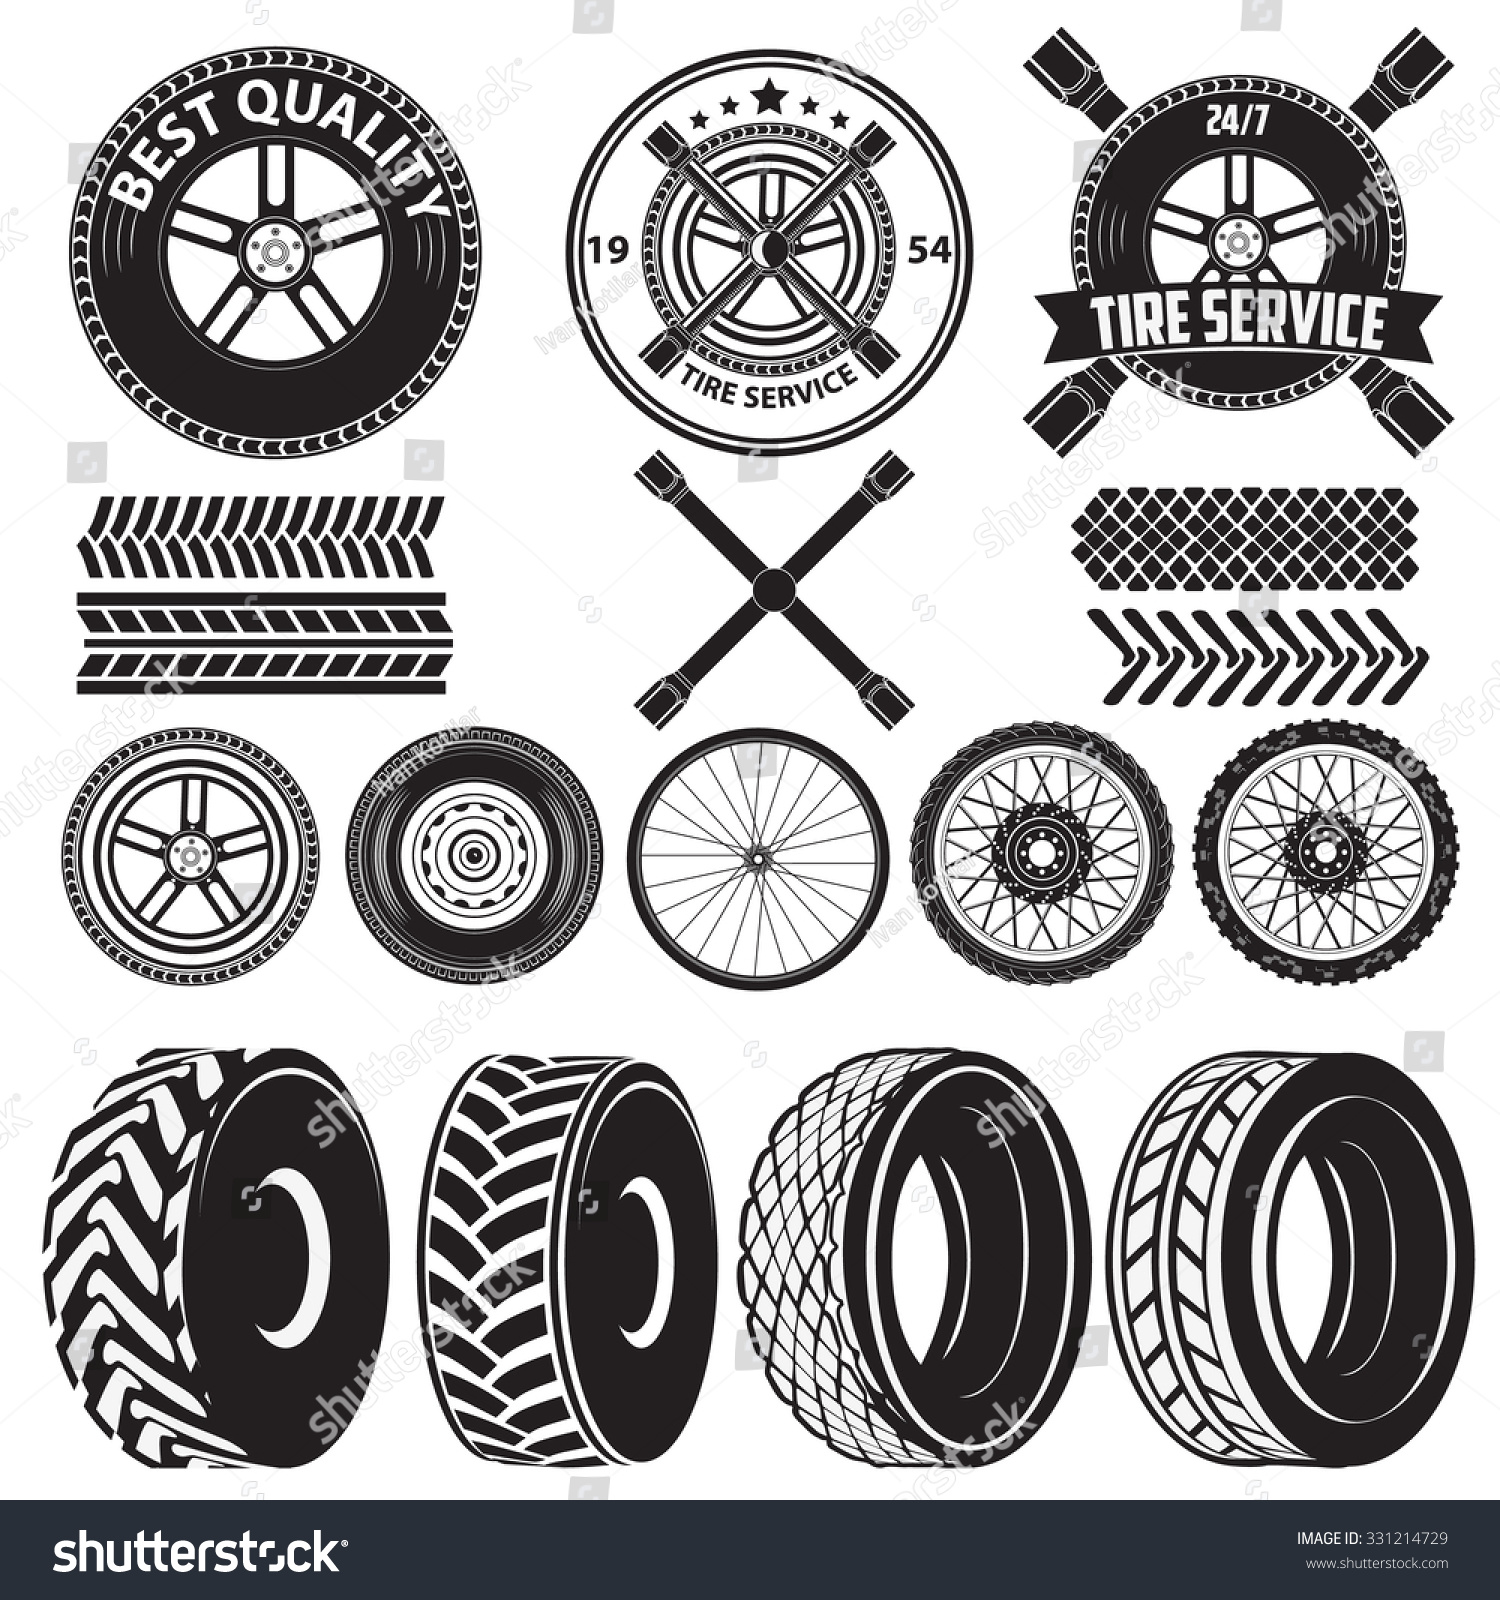 Car Service Labels Tire Service Label Auto Parts Set Of Design Elements In Vector